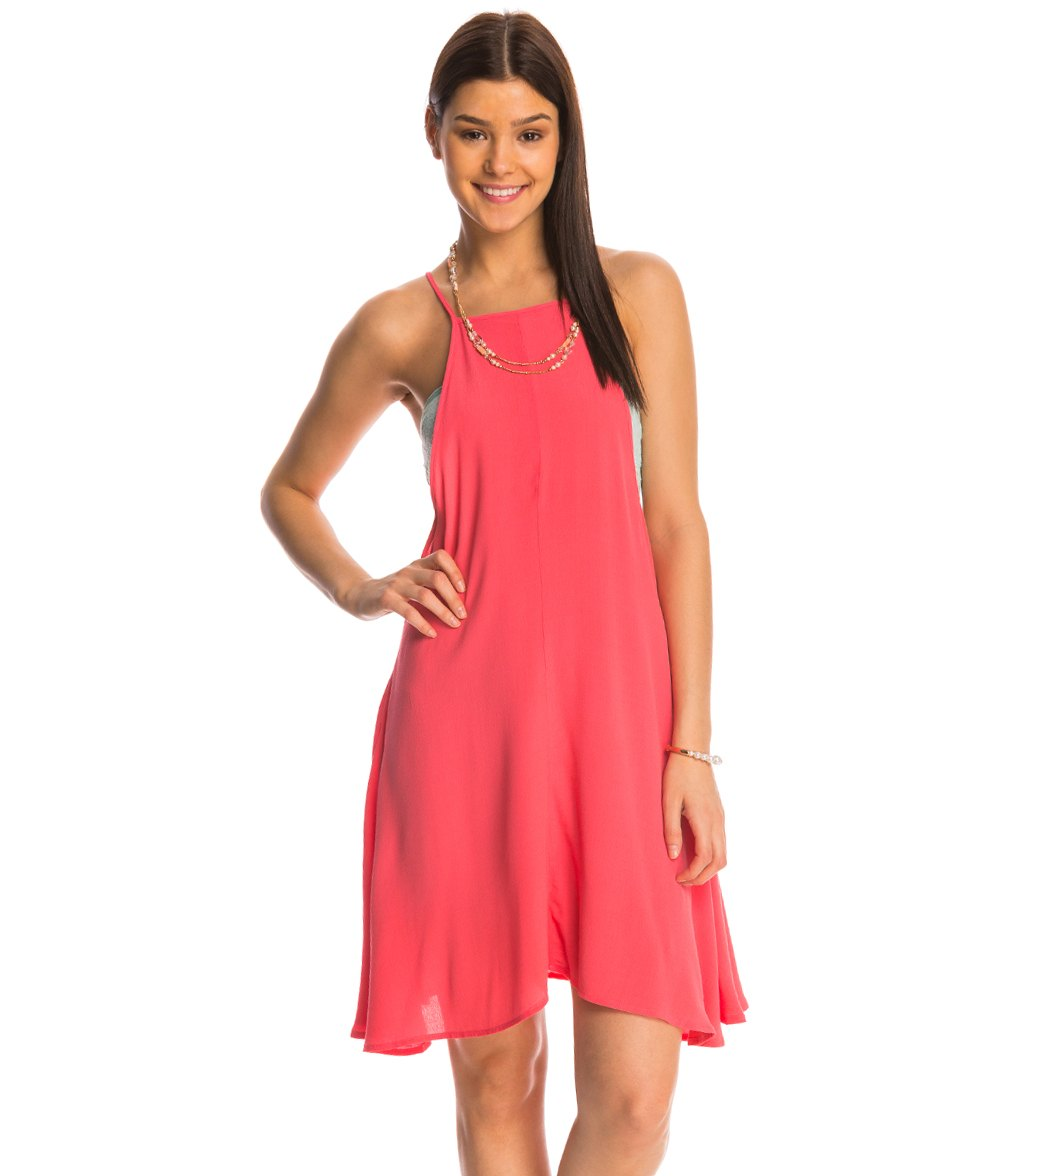 0909aa03a67 MINKPINK Wonder Why Swing Dress at SwimOutlet.com - Free Shipping